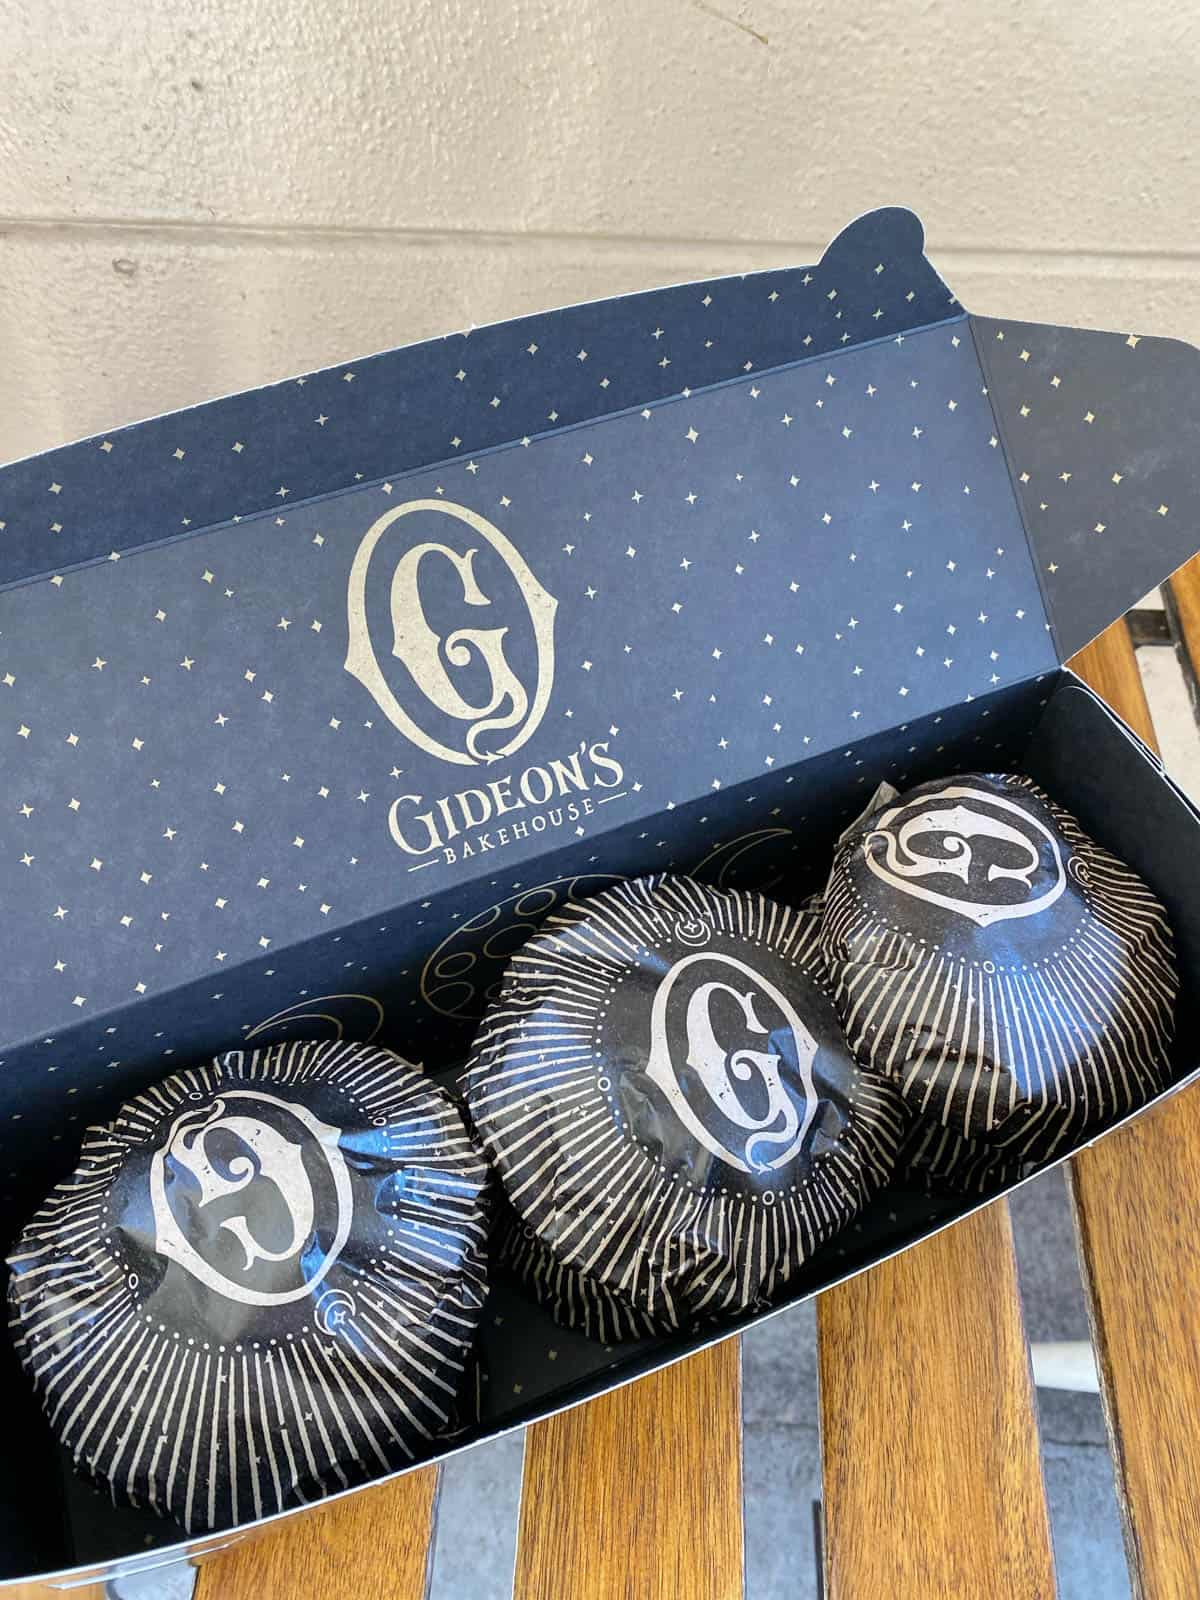 six gideon's bakehouse cookies in a box